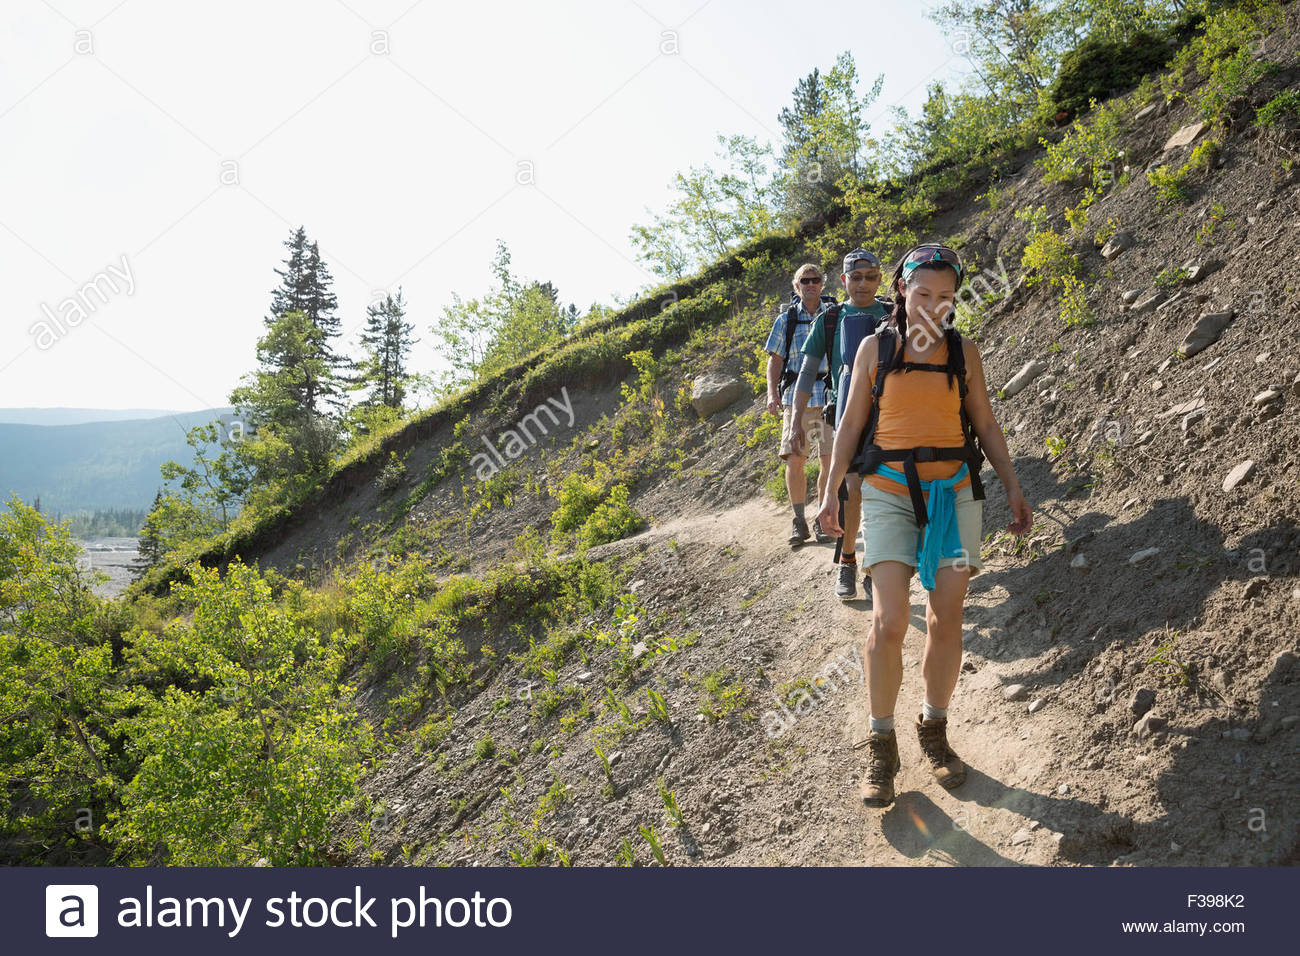 Friends hiking on craggy ridge trail - Stock Image